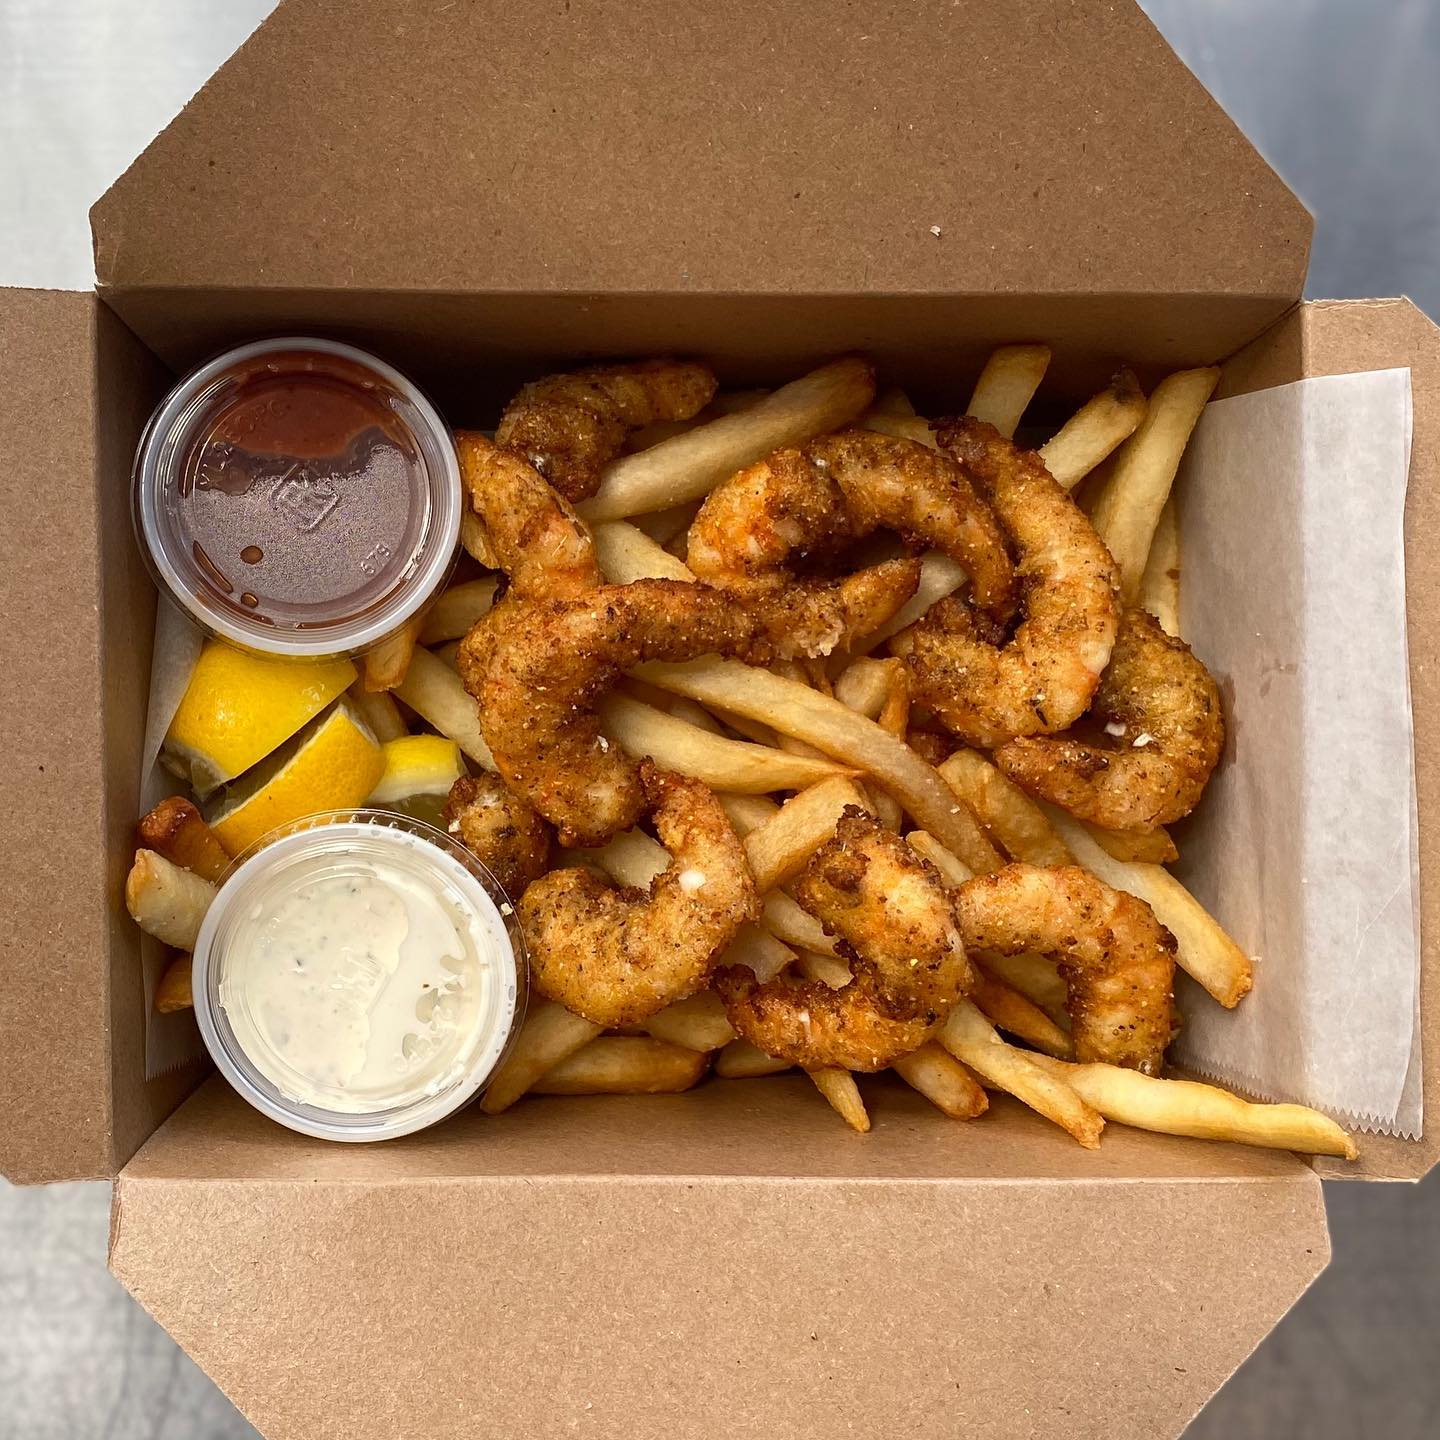 Fried shrimp and fries from Huckleberry